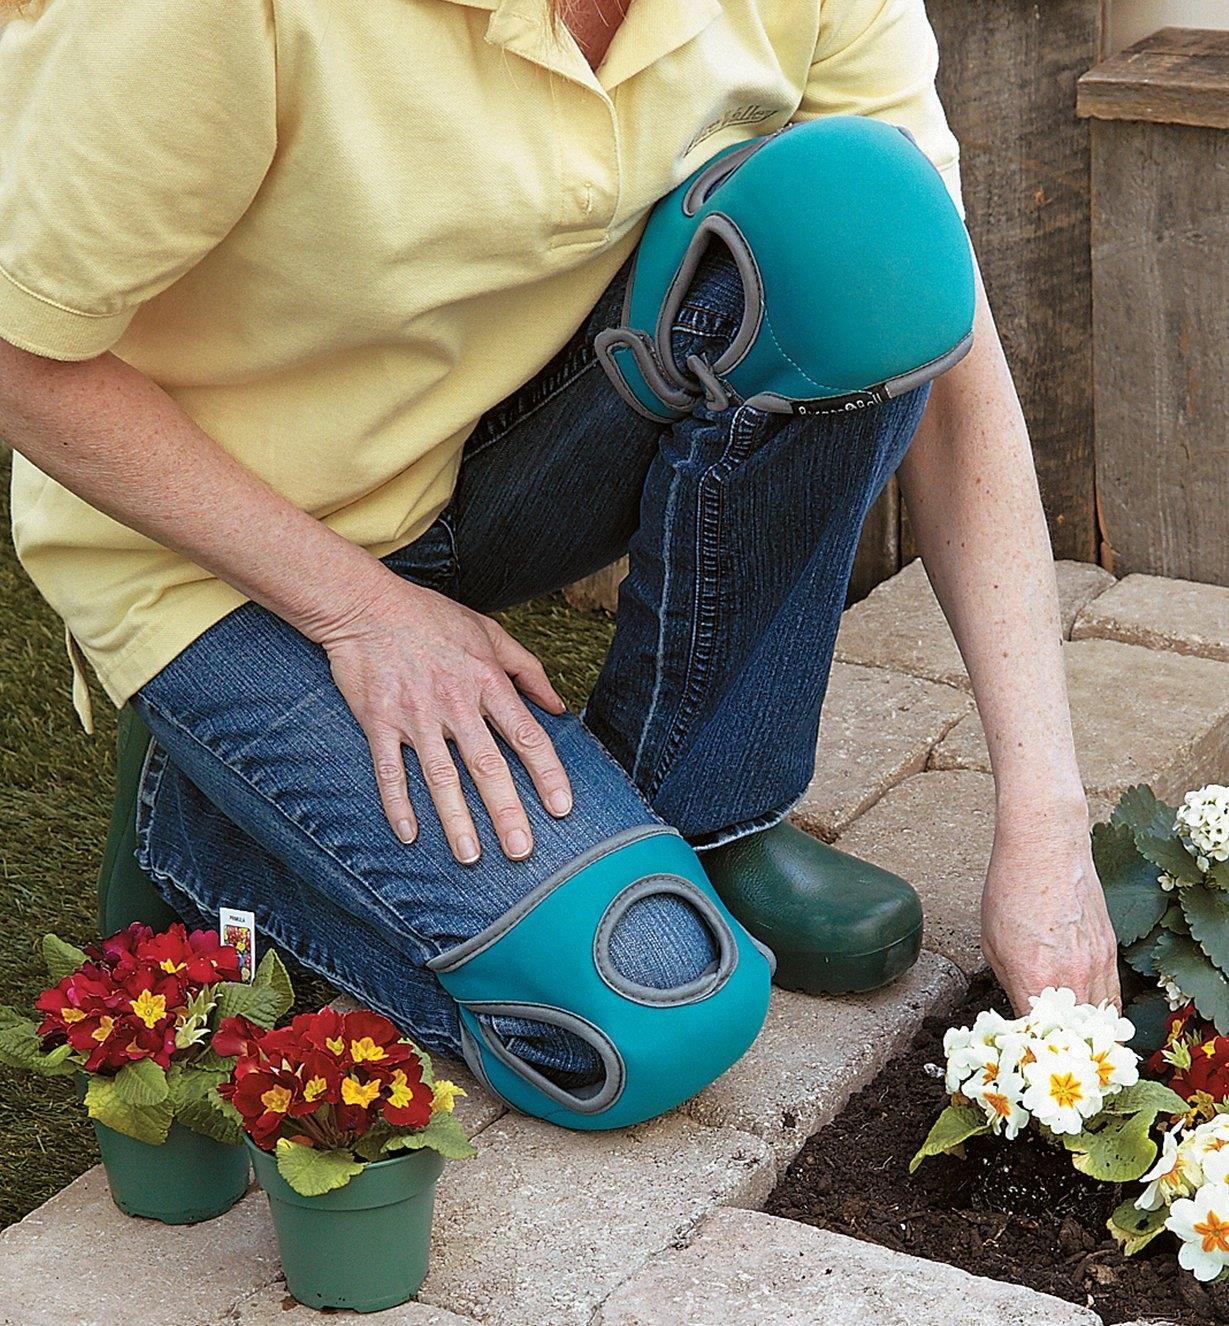 A woman wearing memory foam knee pads kneels to plant flowers in a garden bed